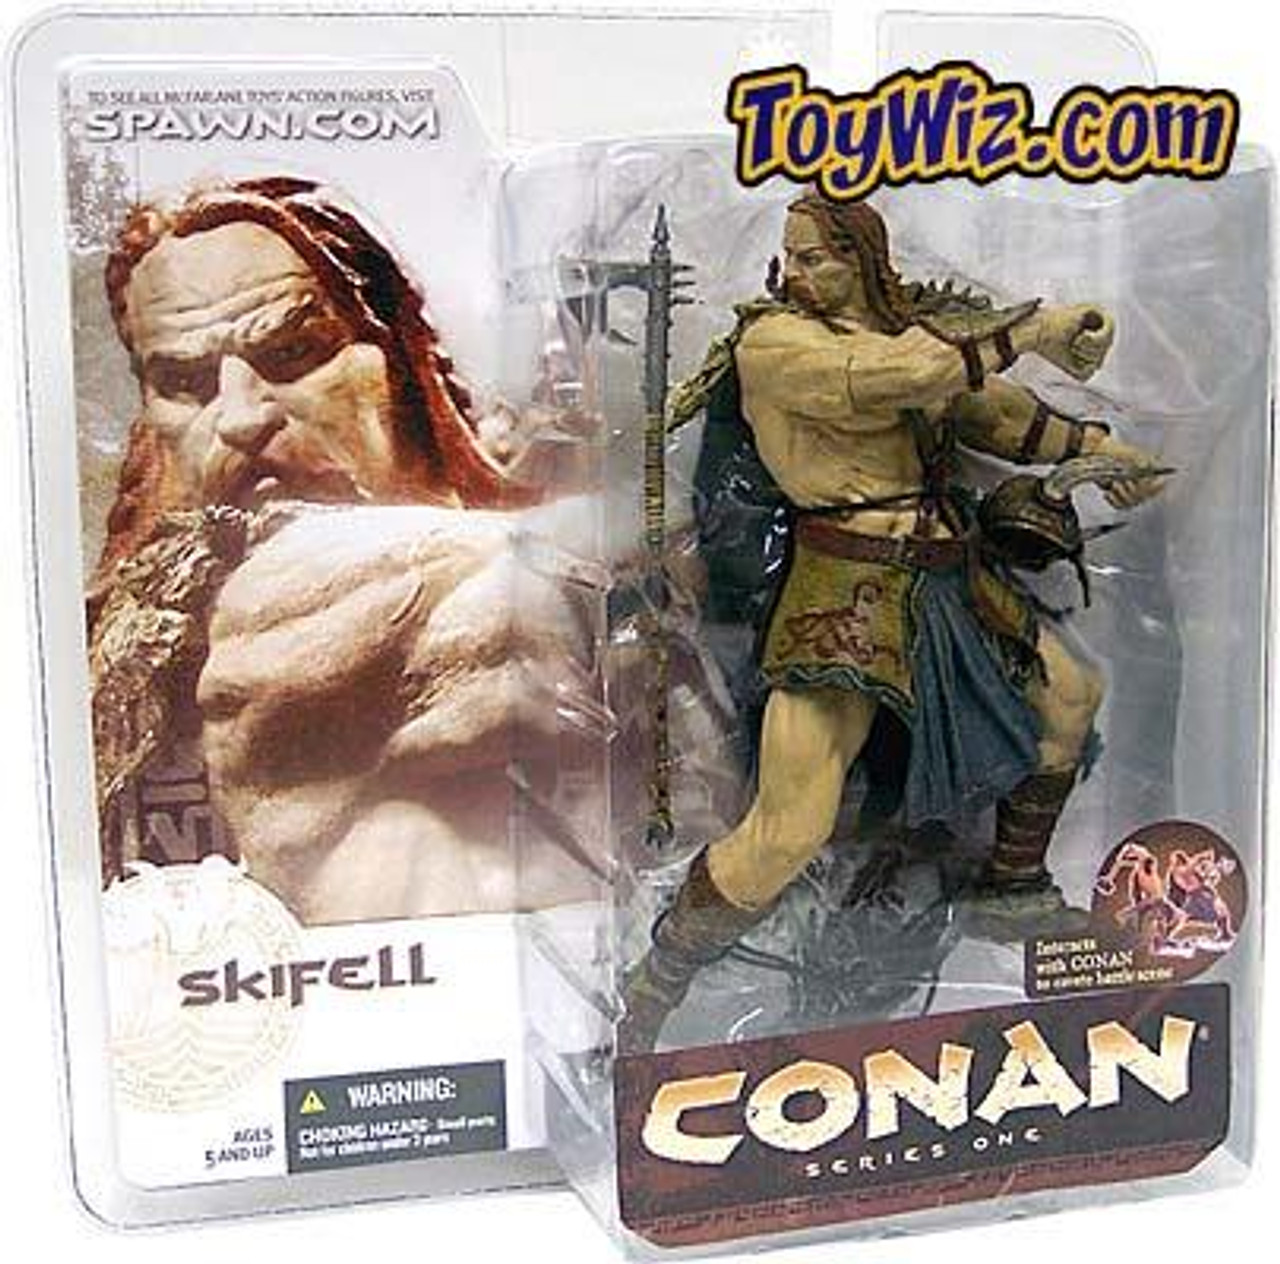 McFarlane Toys Conan the Barbarian Skifell Action Figure